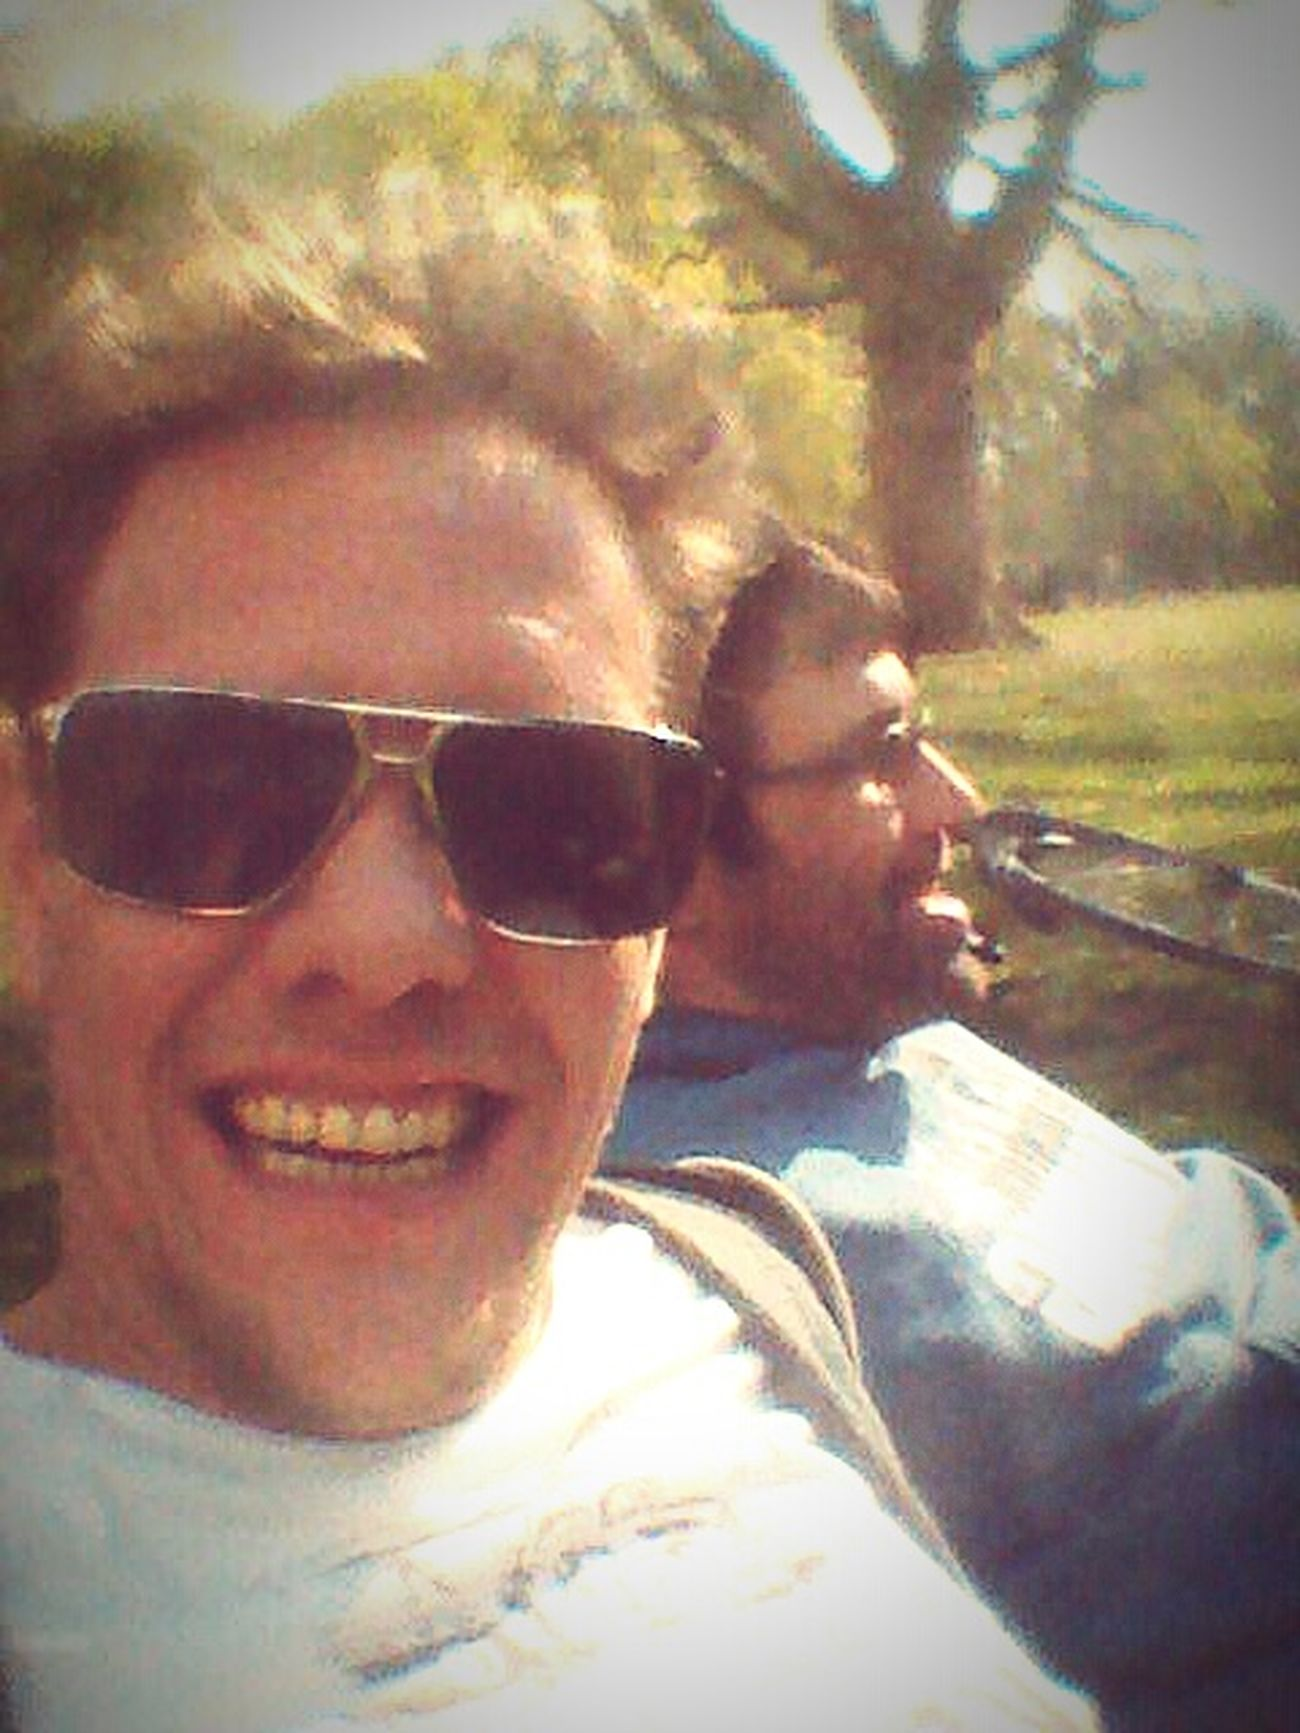 Relaxing in the last warm Summerdays enjoying the sun with frien ds in the Parks of Berlin